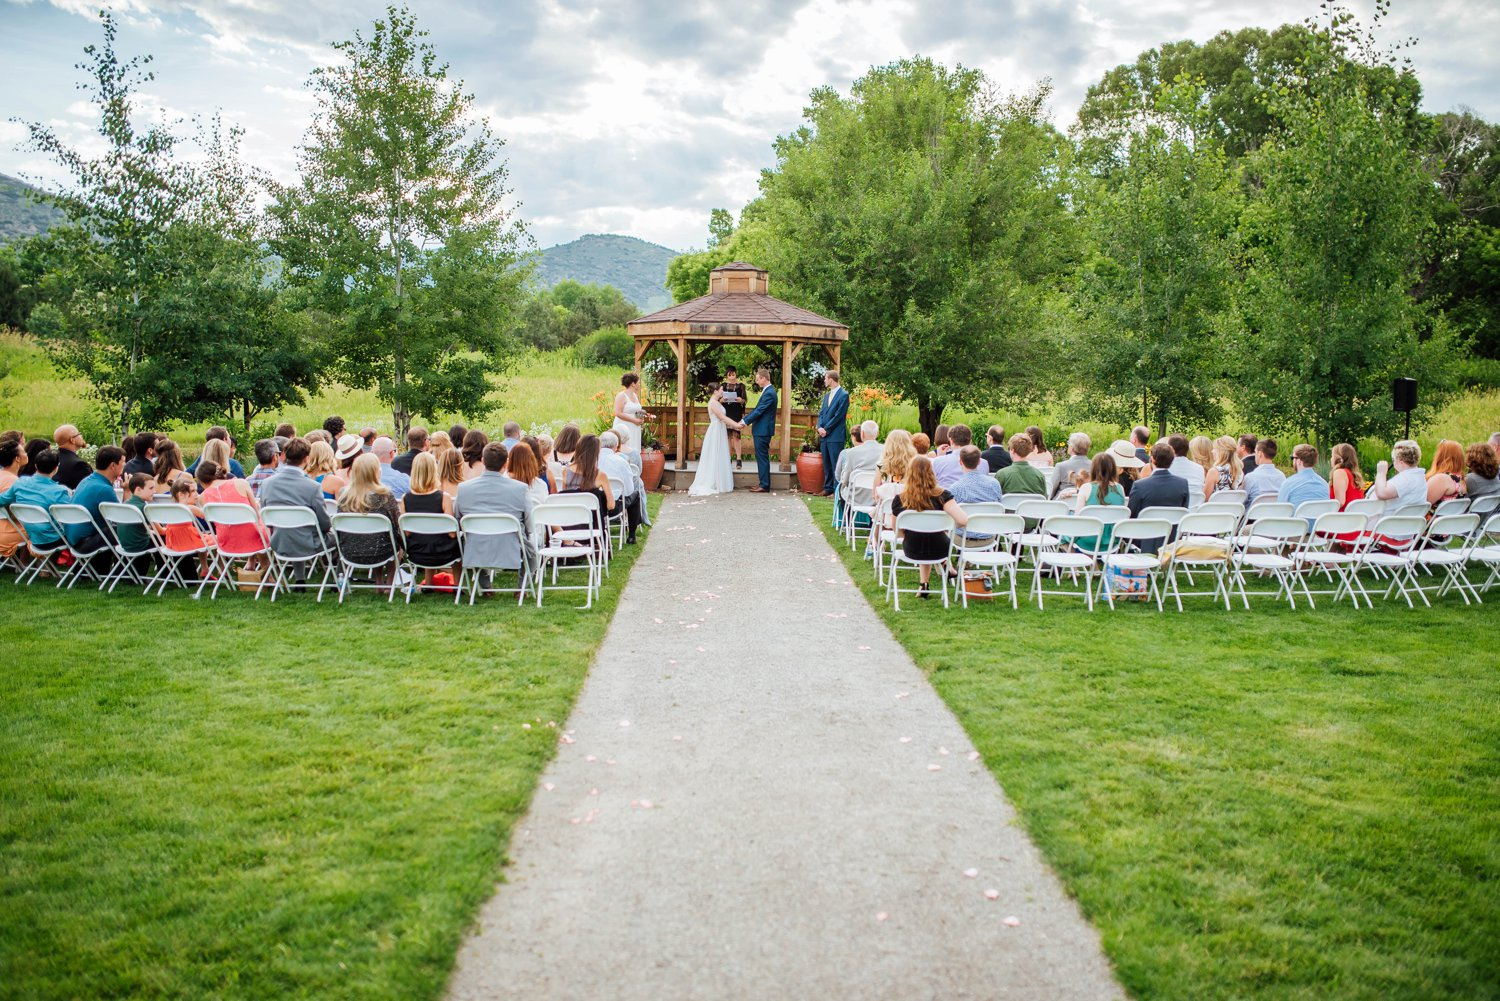 The outdoor chapel at the Denver Botanic Gardens at Chatfield is an awesome venue for a Colorado summer wedding.Photo by Maddie Mae Photography